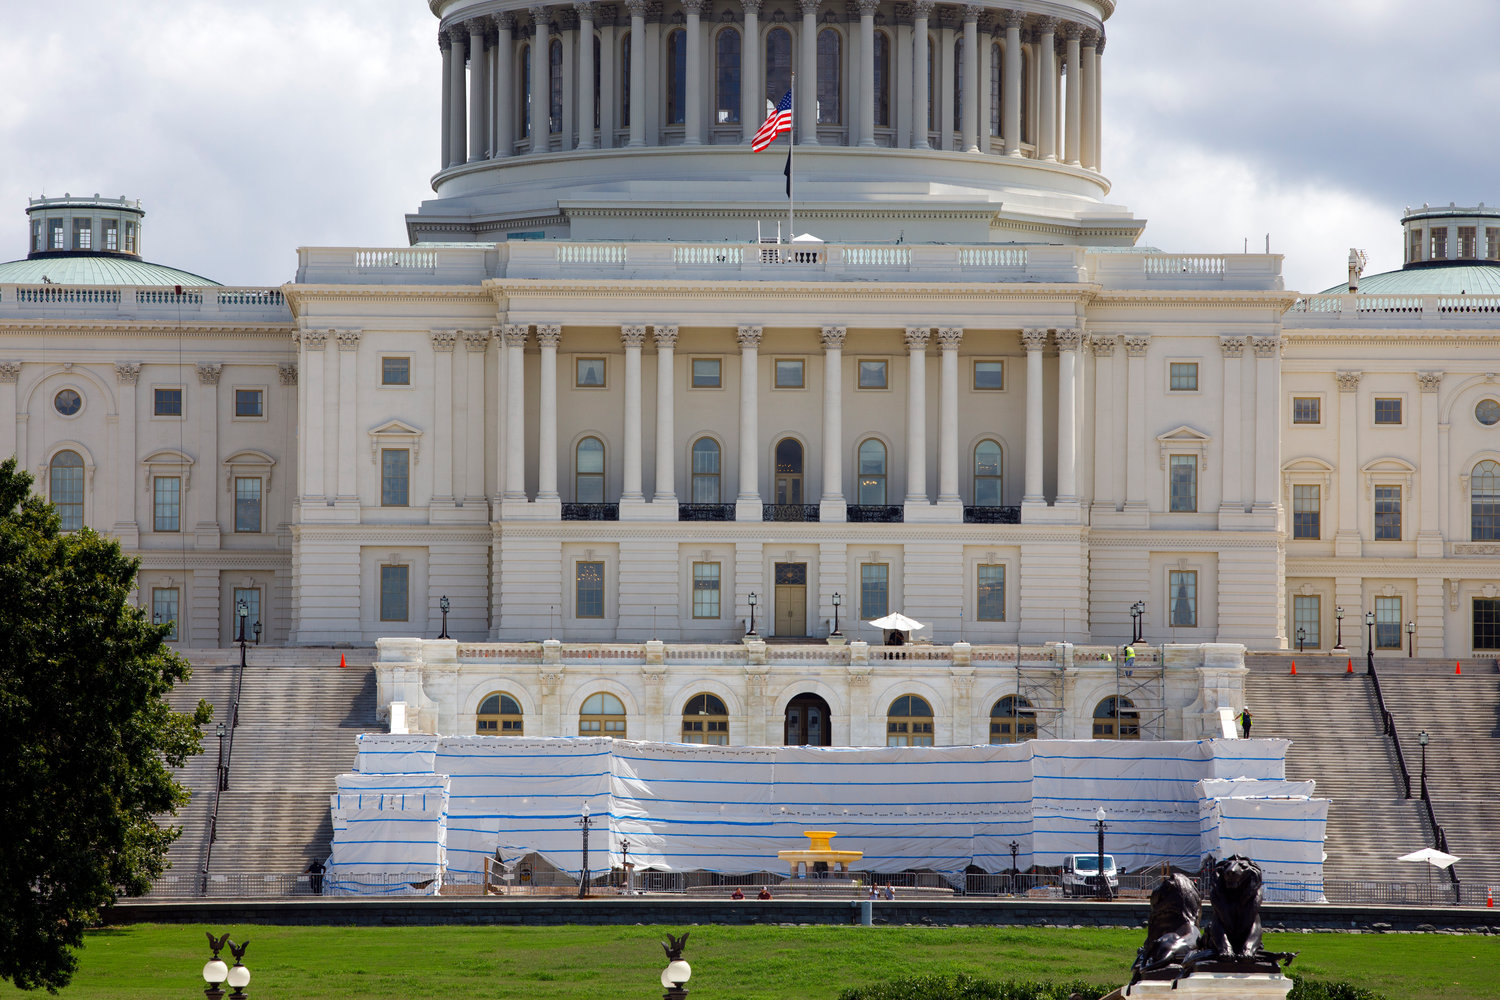 The East Front side of the U.S. Capitol on Friday, Aug. 7, 2020, in Washington. (AP Photo/Jon Elswick)